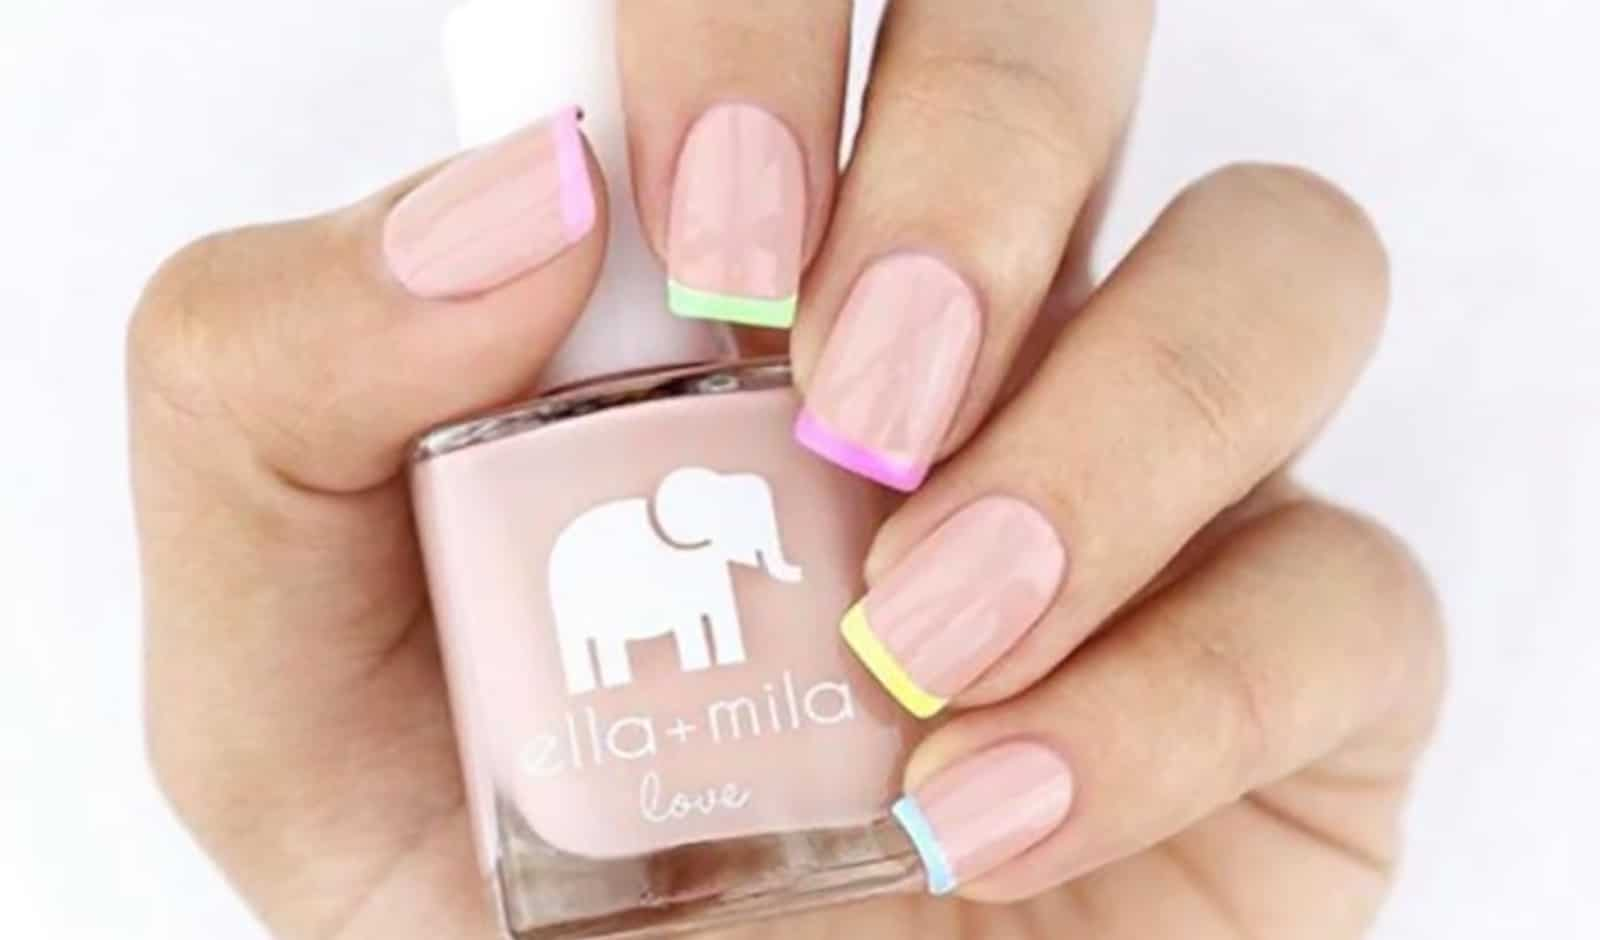 French-Manicure-is-Back-in-The-Coolest-Ways-5